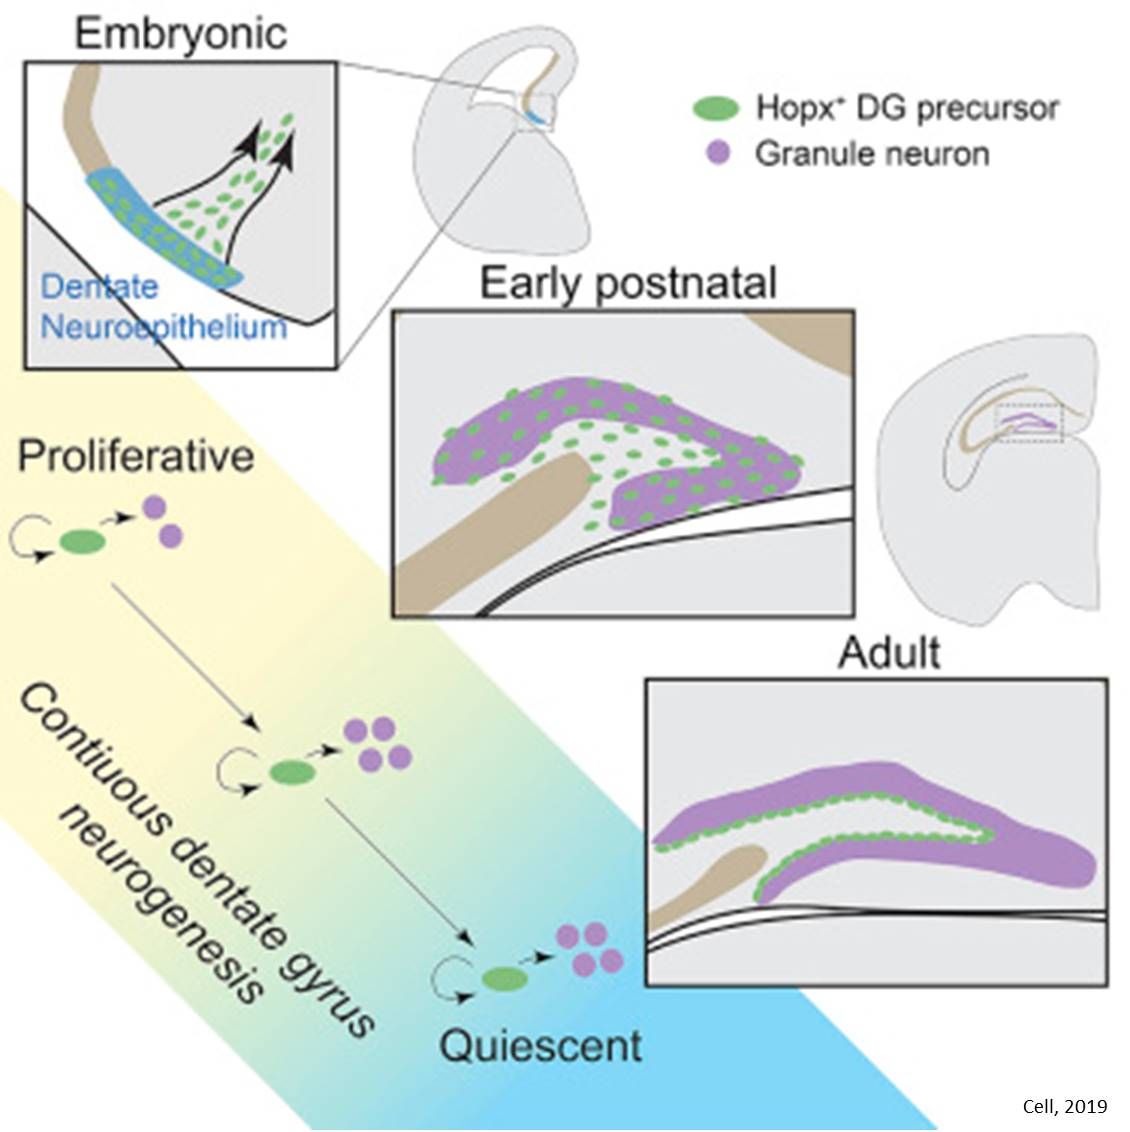 Neurogenesis throughout development and adulthood